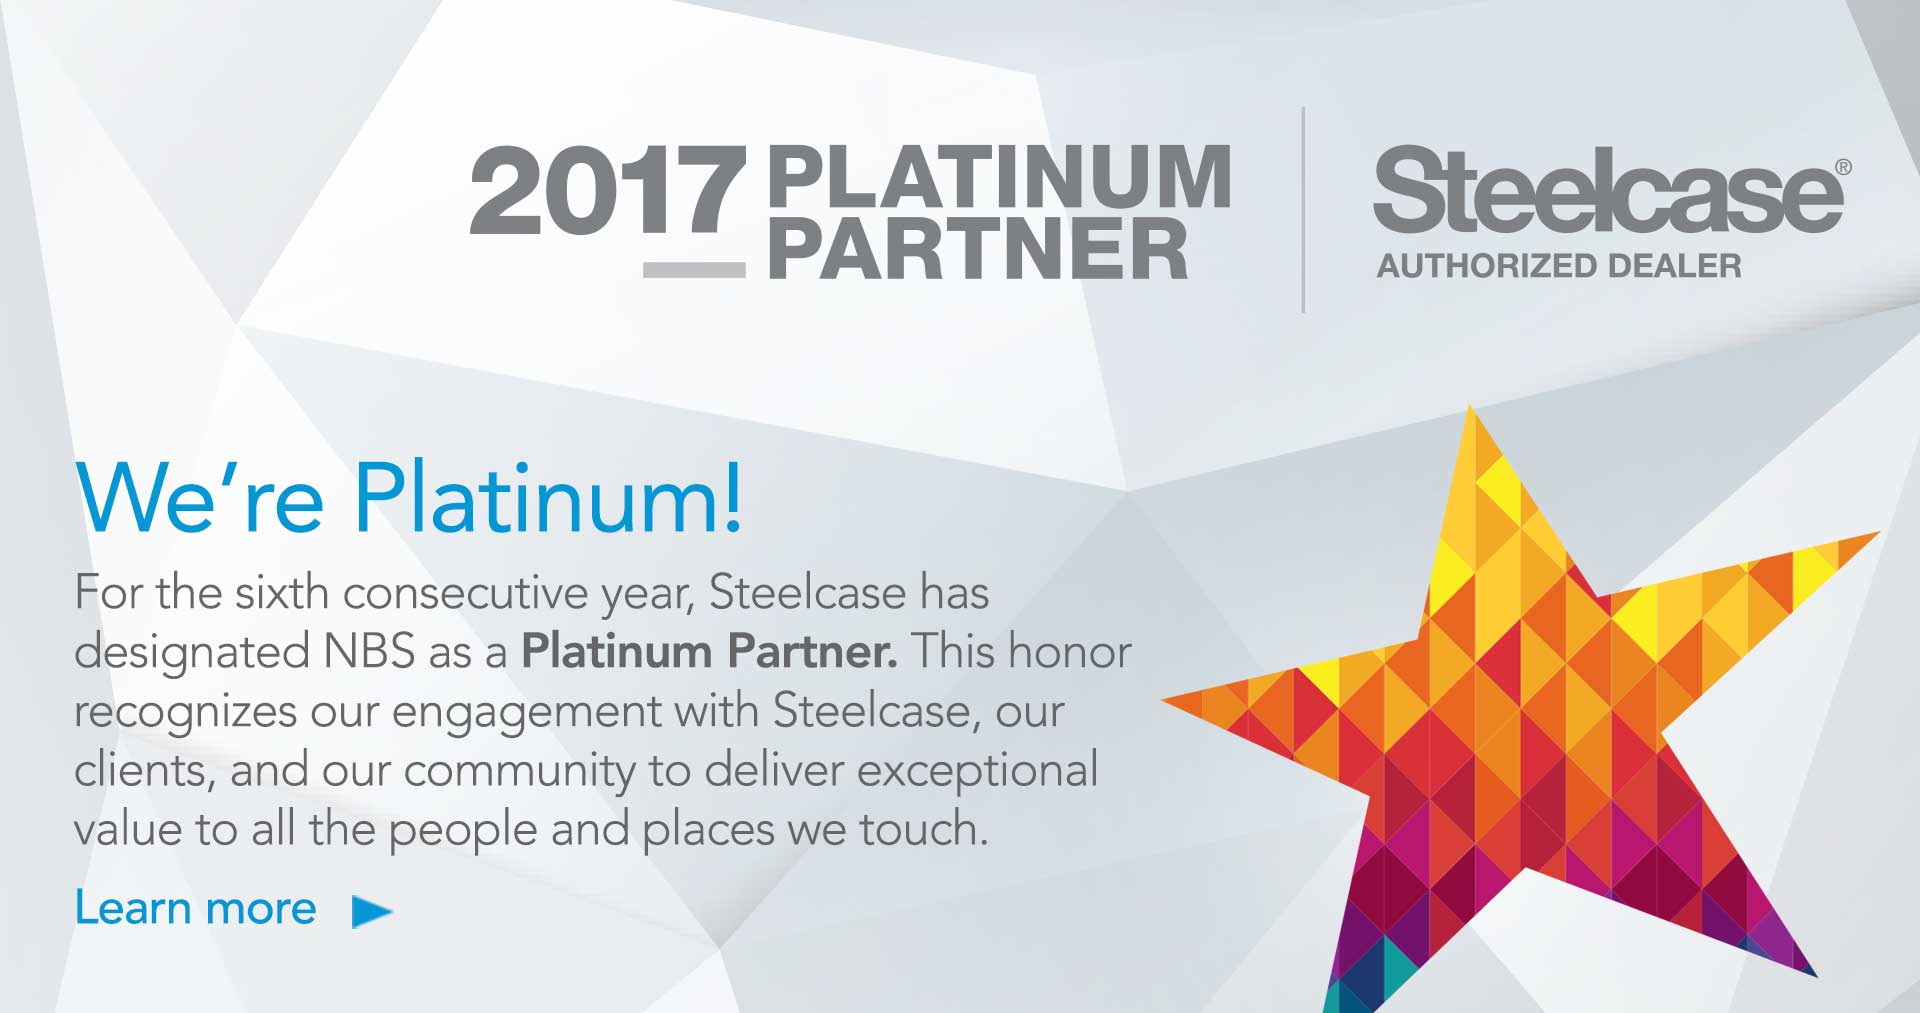 NBS Steelcase Platinum Partner 2017